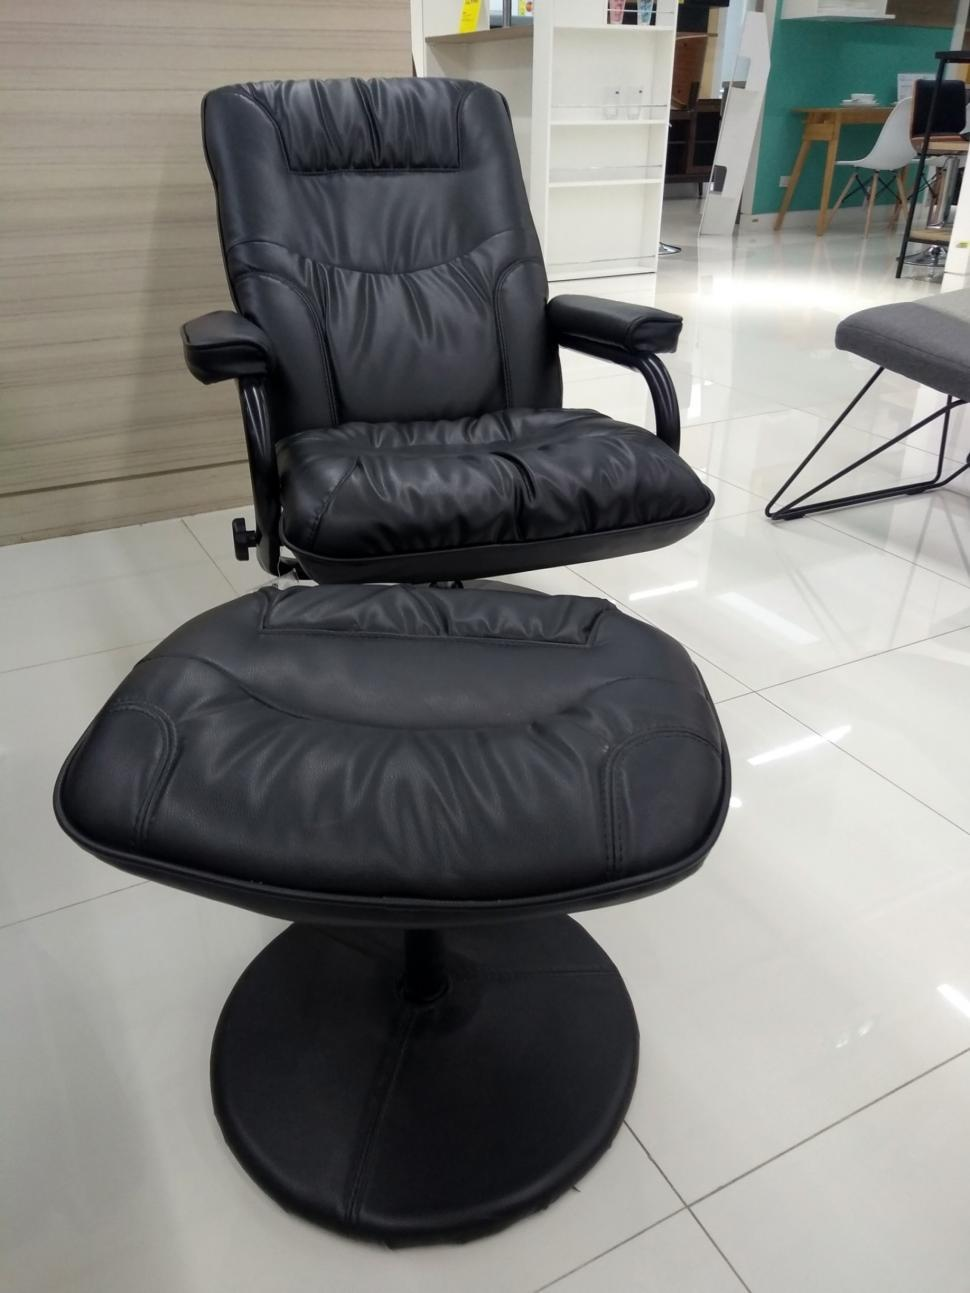 Download Free Stock HD Photo of Comfy black leather swivel chair  Online